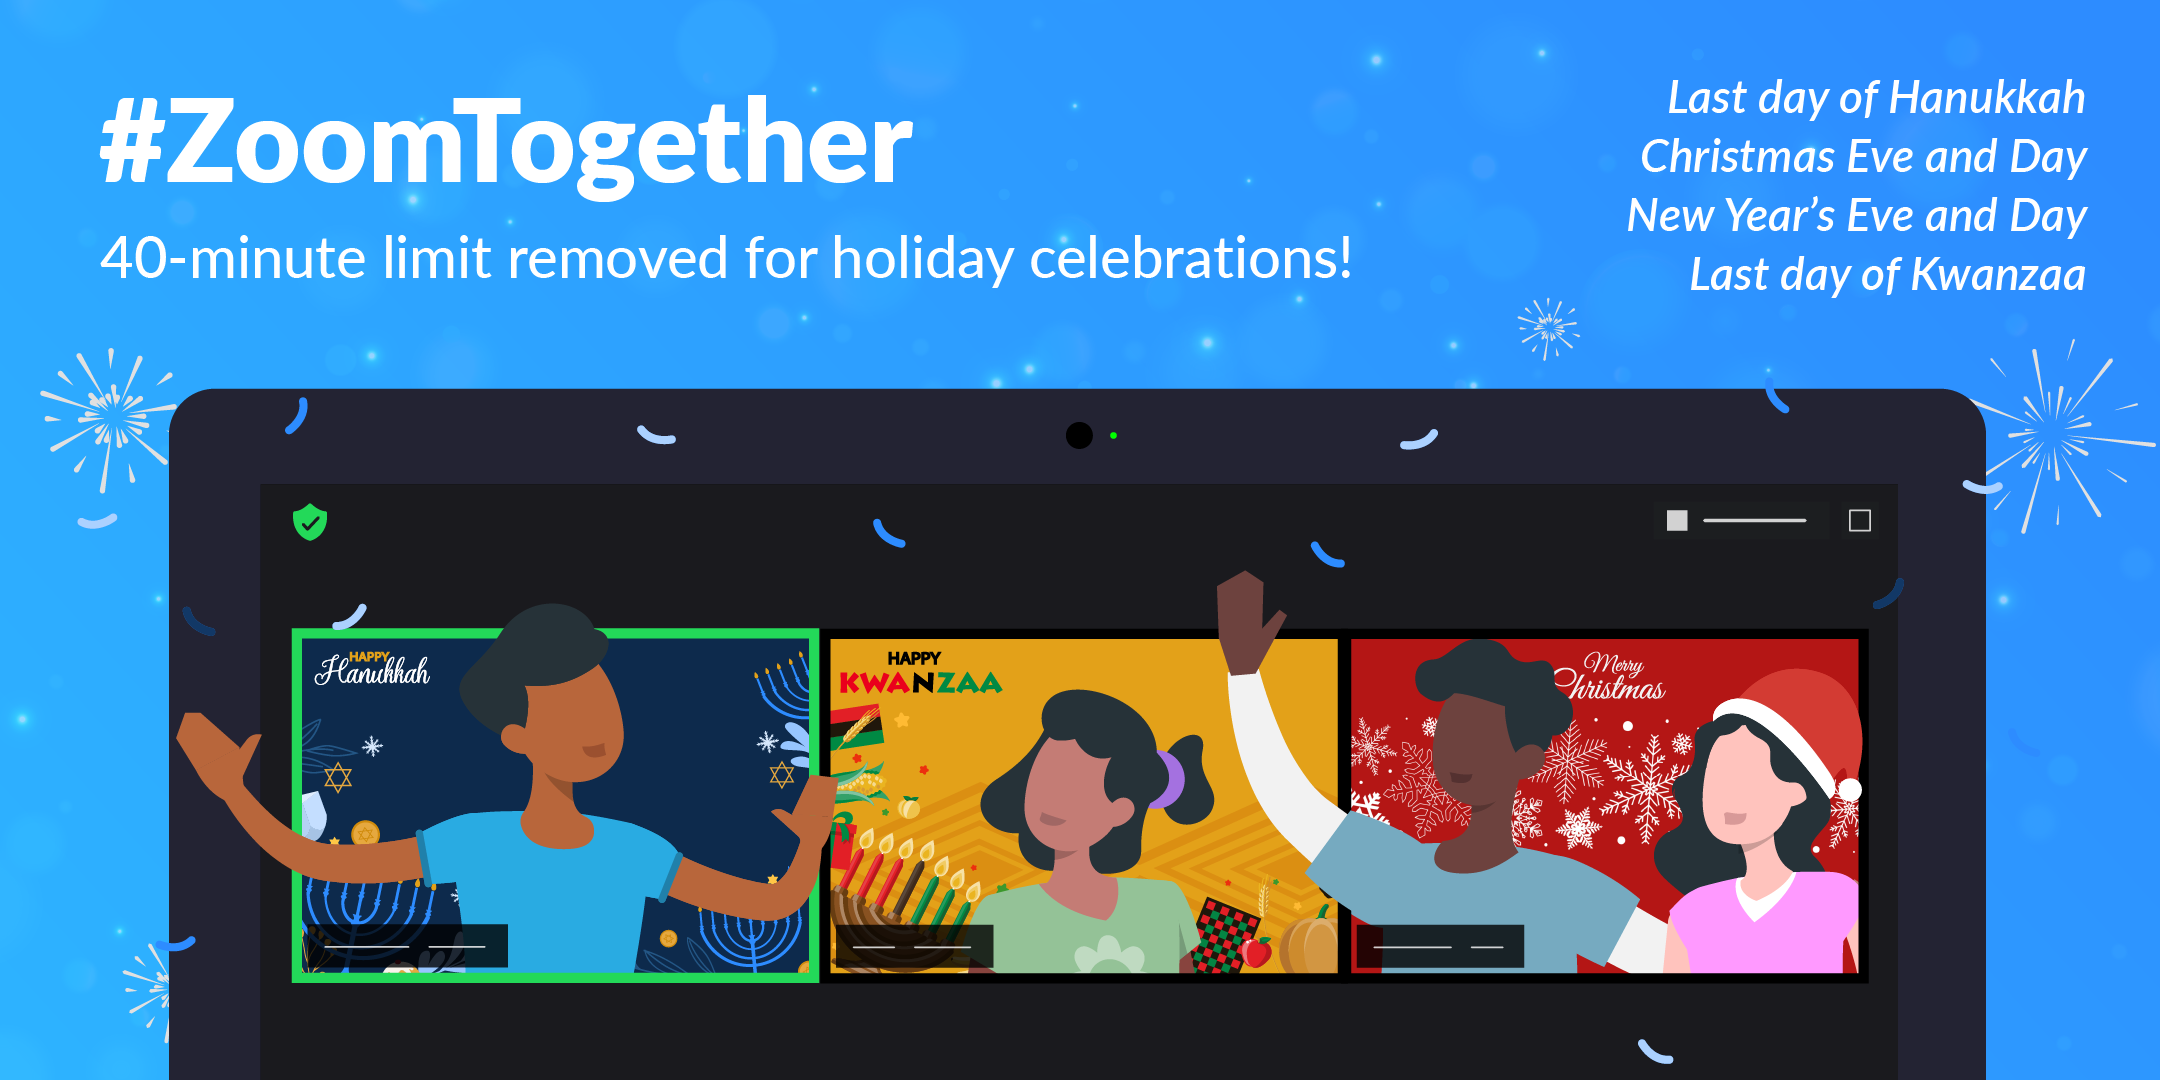 #ZoomTogether: Celebrate the Holidays with Unlimited Meetings - Zoom Blog